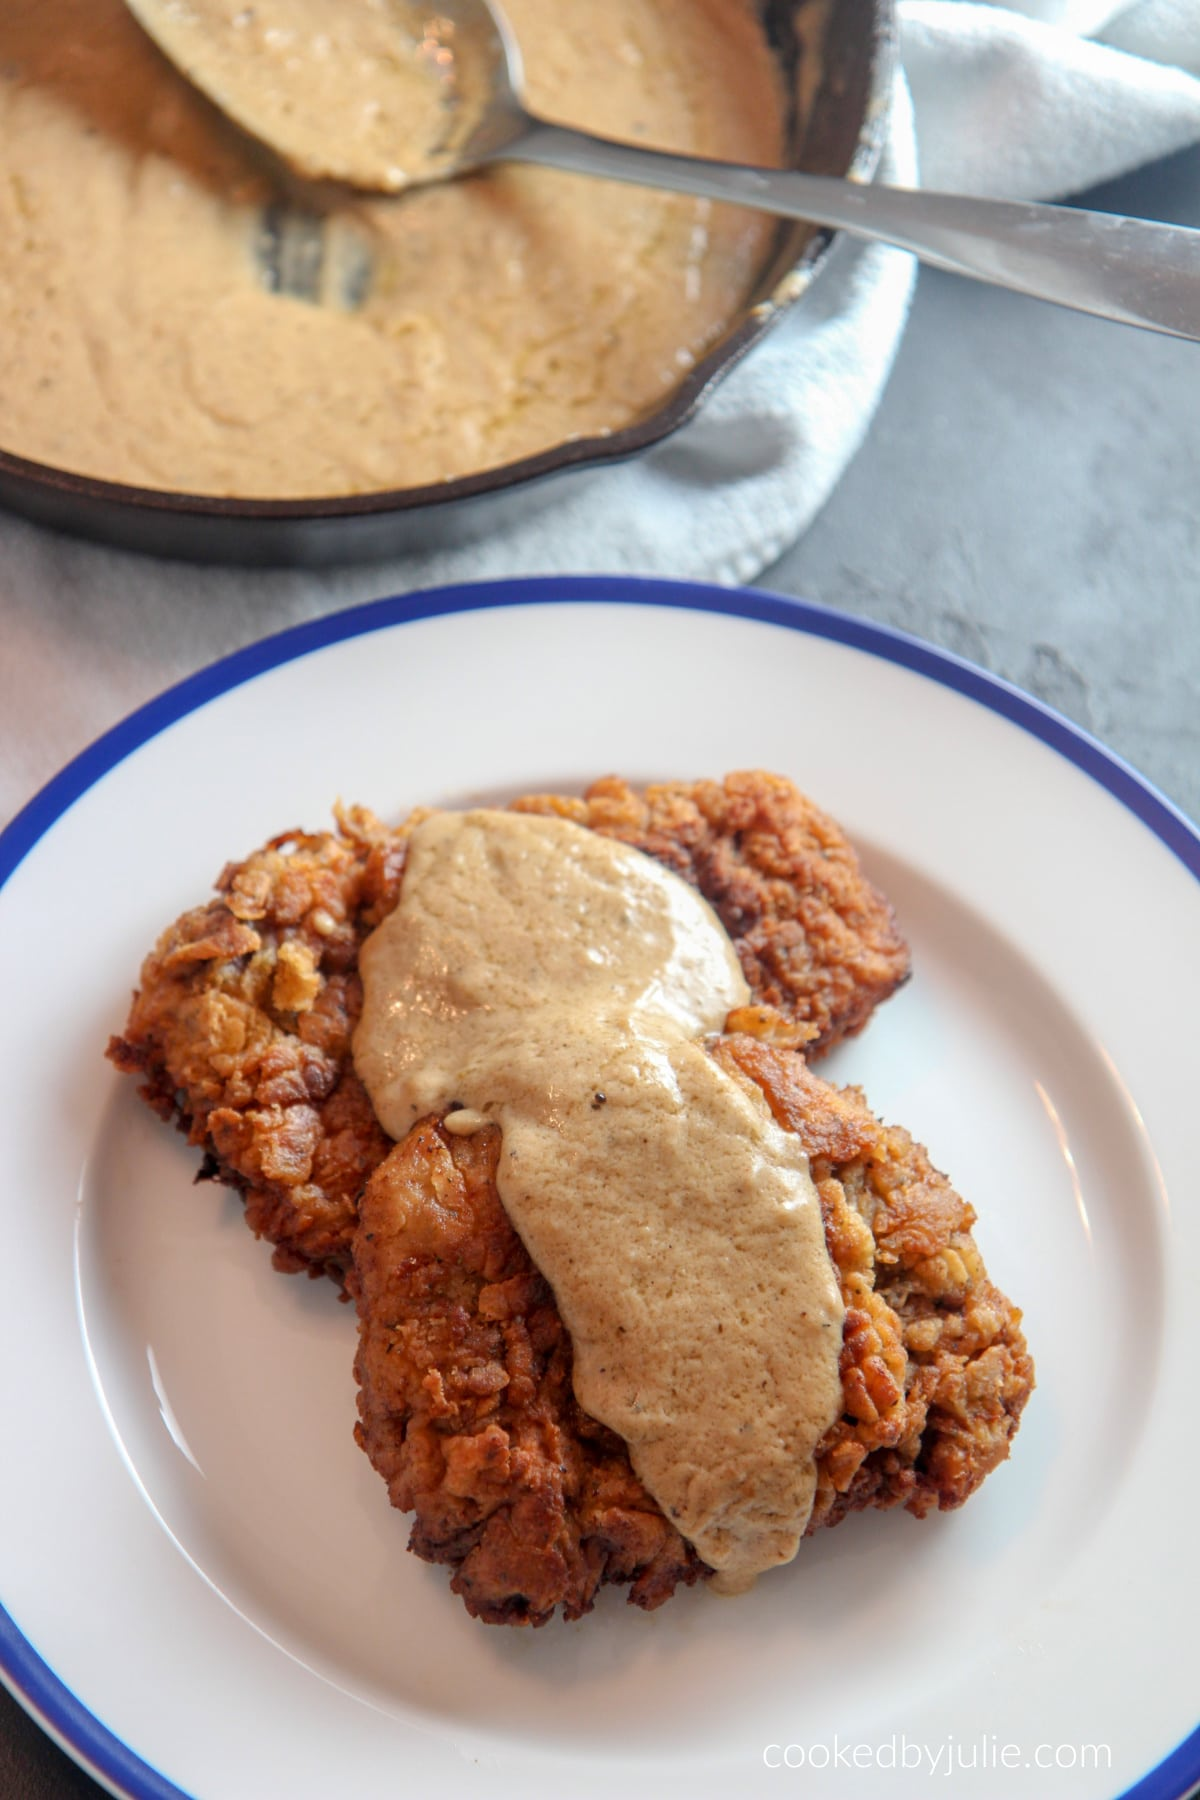 two chicken fried steak cutlets with gravy on top and an iron skillet with gravy and a spoon in the background.